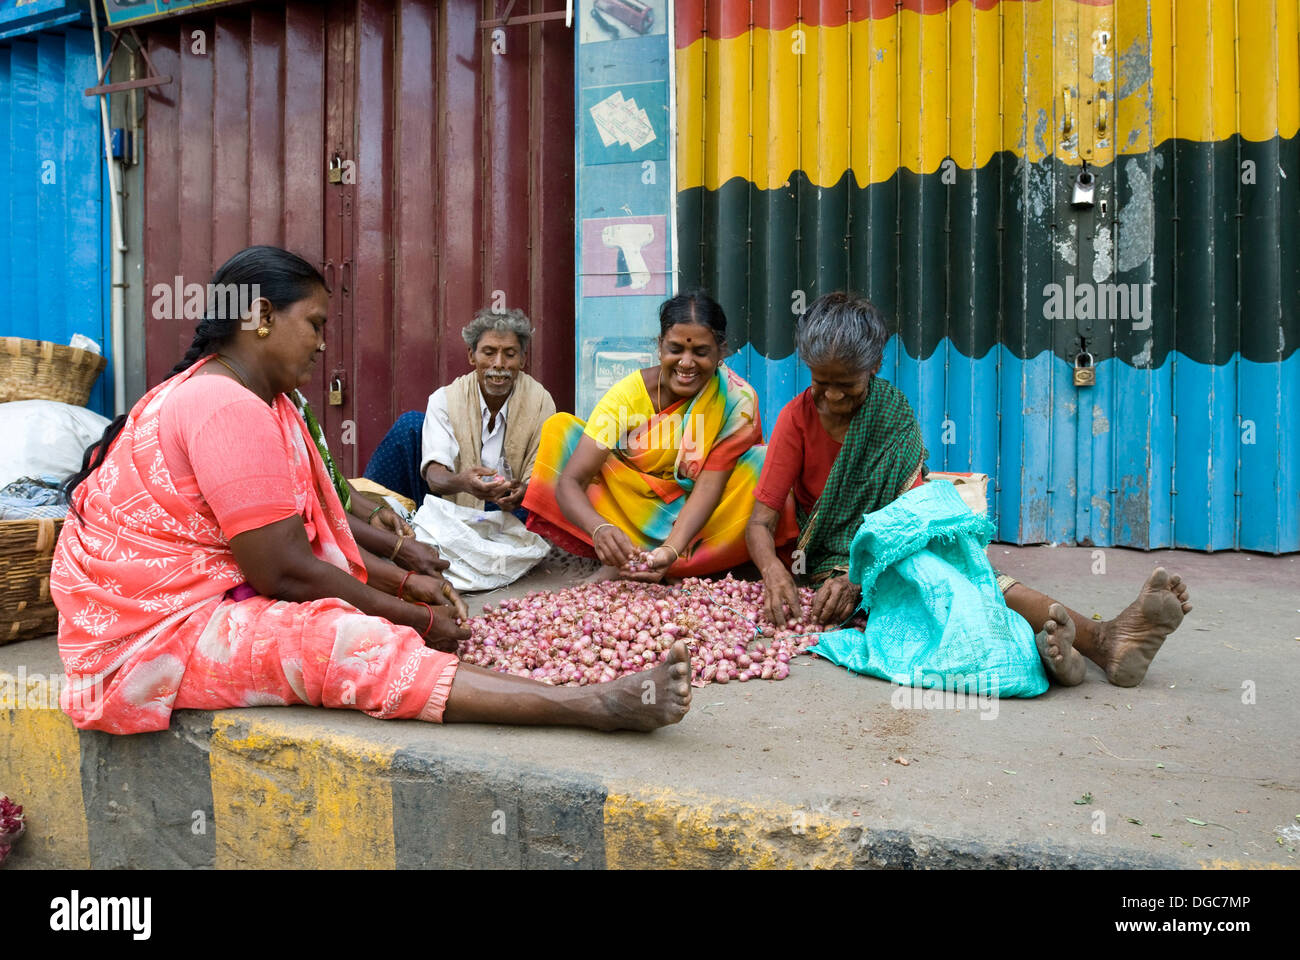 Grading the onion in the early morning hours on the platform at Madurai, Tamil Nadu - Stock Image